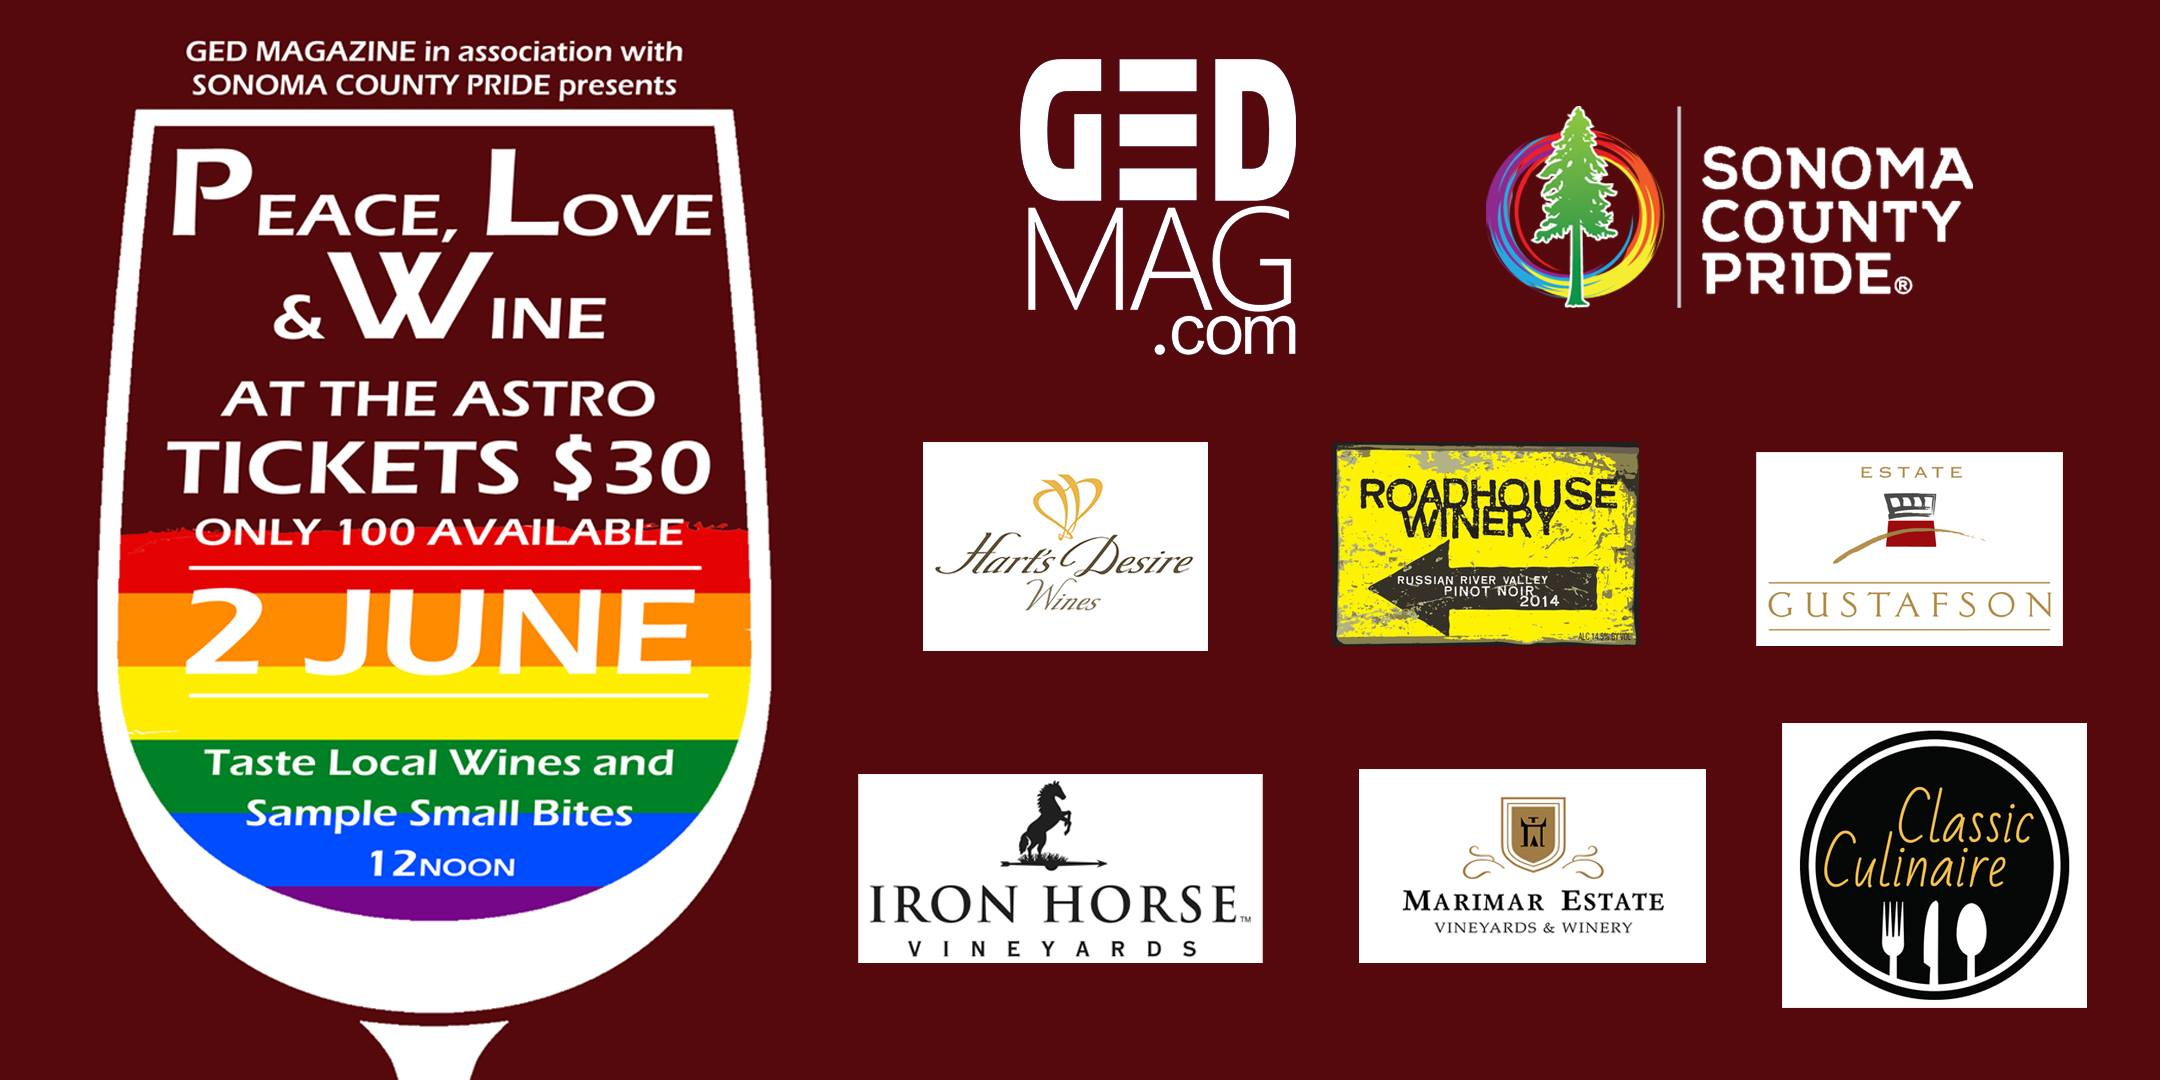 GED Magazine Presents: Peace, Love & Wine